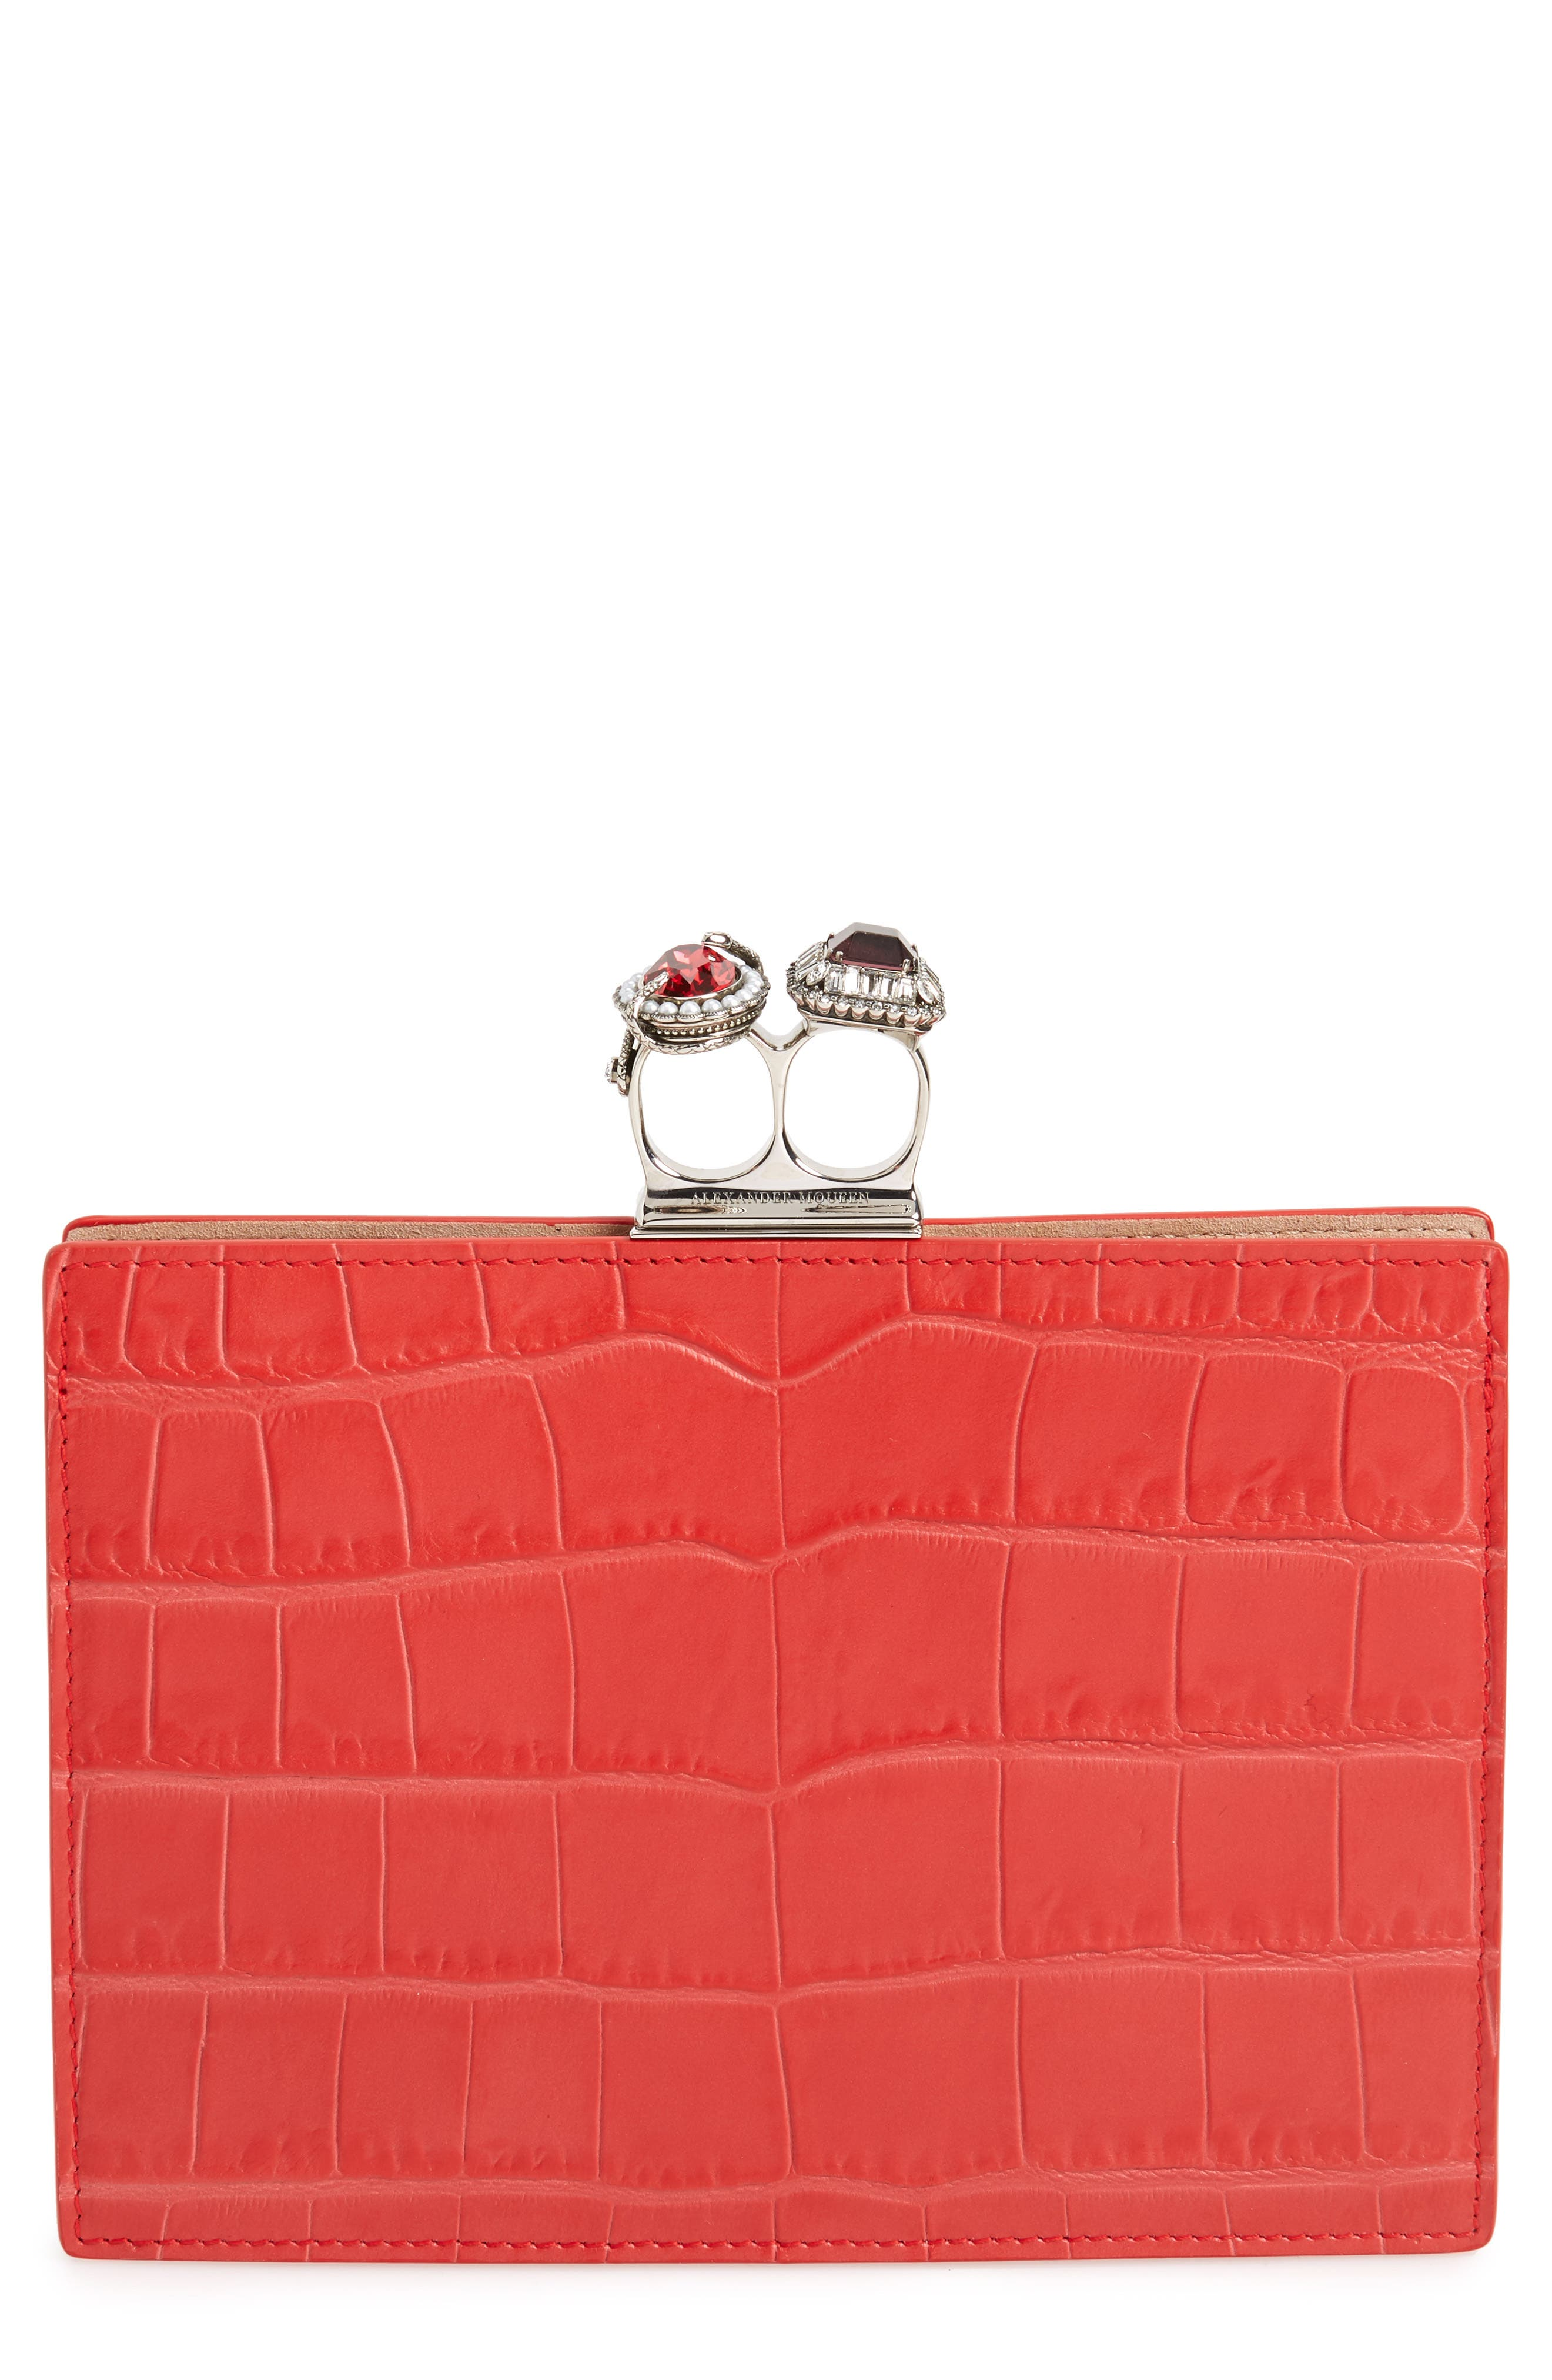 Croc Embossed Calfskin Leather Double Ring Clutch,                             Main thumbnail 1, color,                             LUST RED